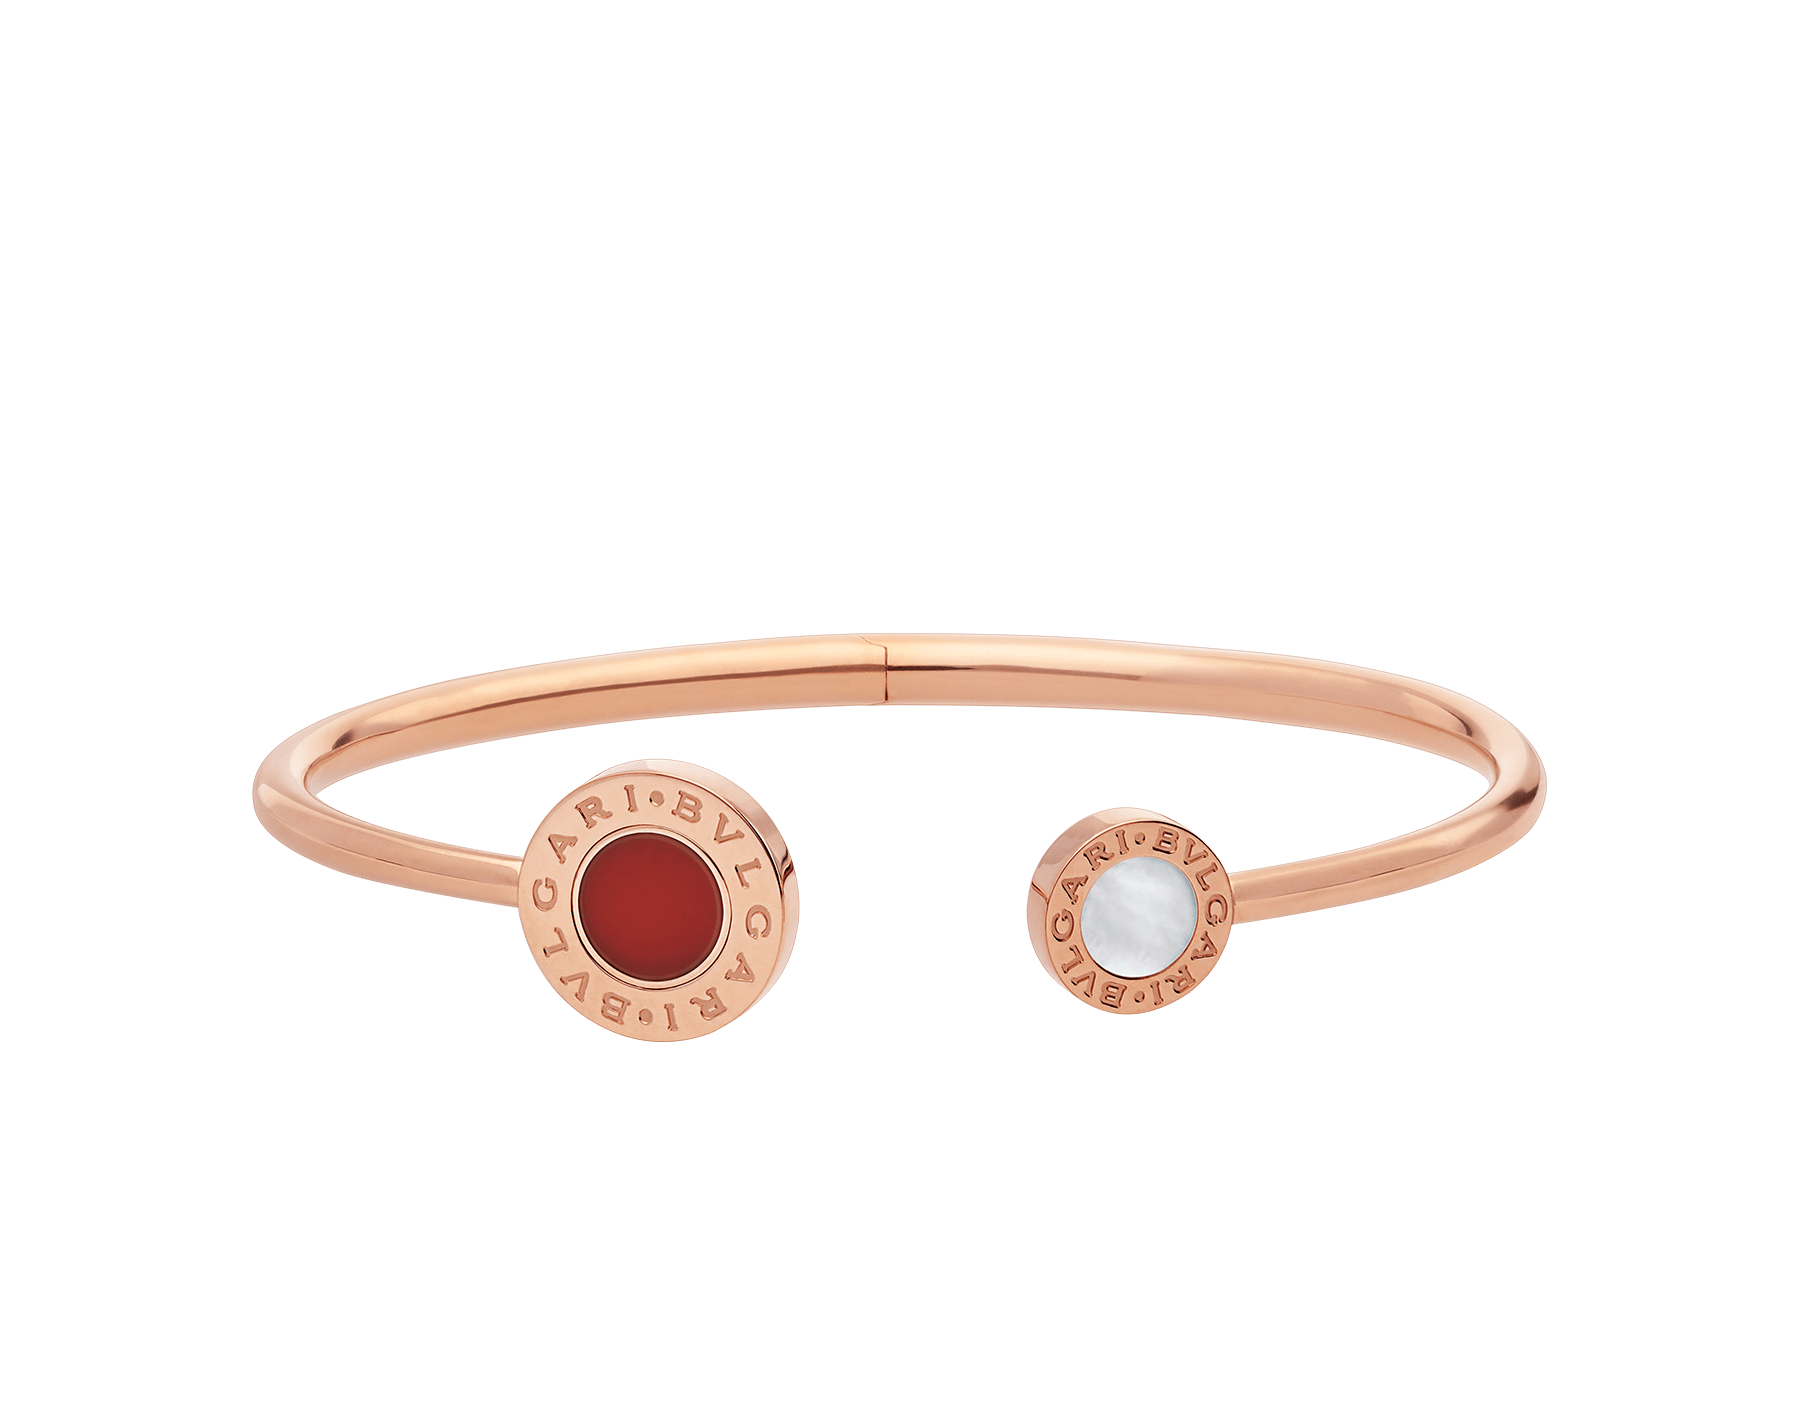 BVLGARI BVLGARI 18 kt rose gold flip bracelet set with mother-of-pearl and carnelian elements BR858280 image 2